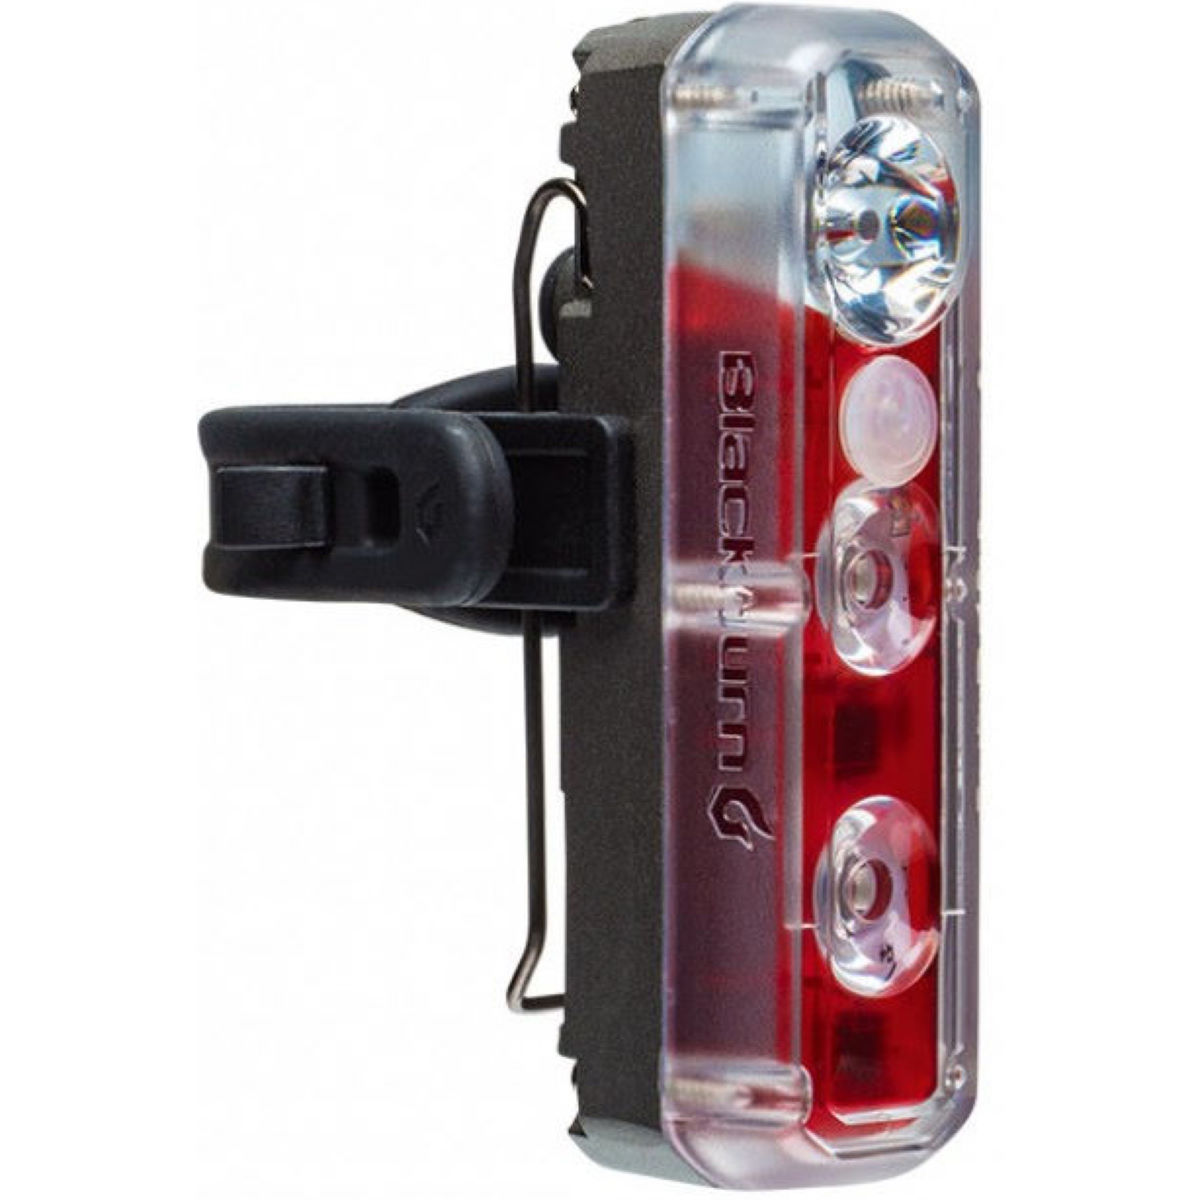 Blackburn 2'Fer XL Front/Rear 200/40 Light - Juegos de luces